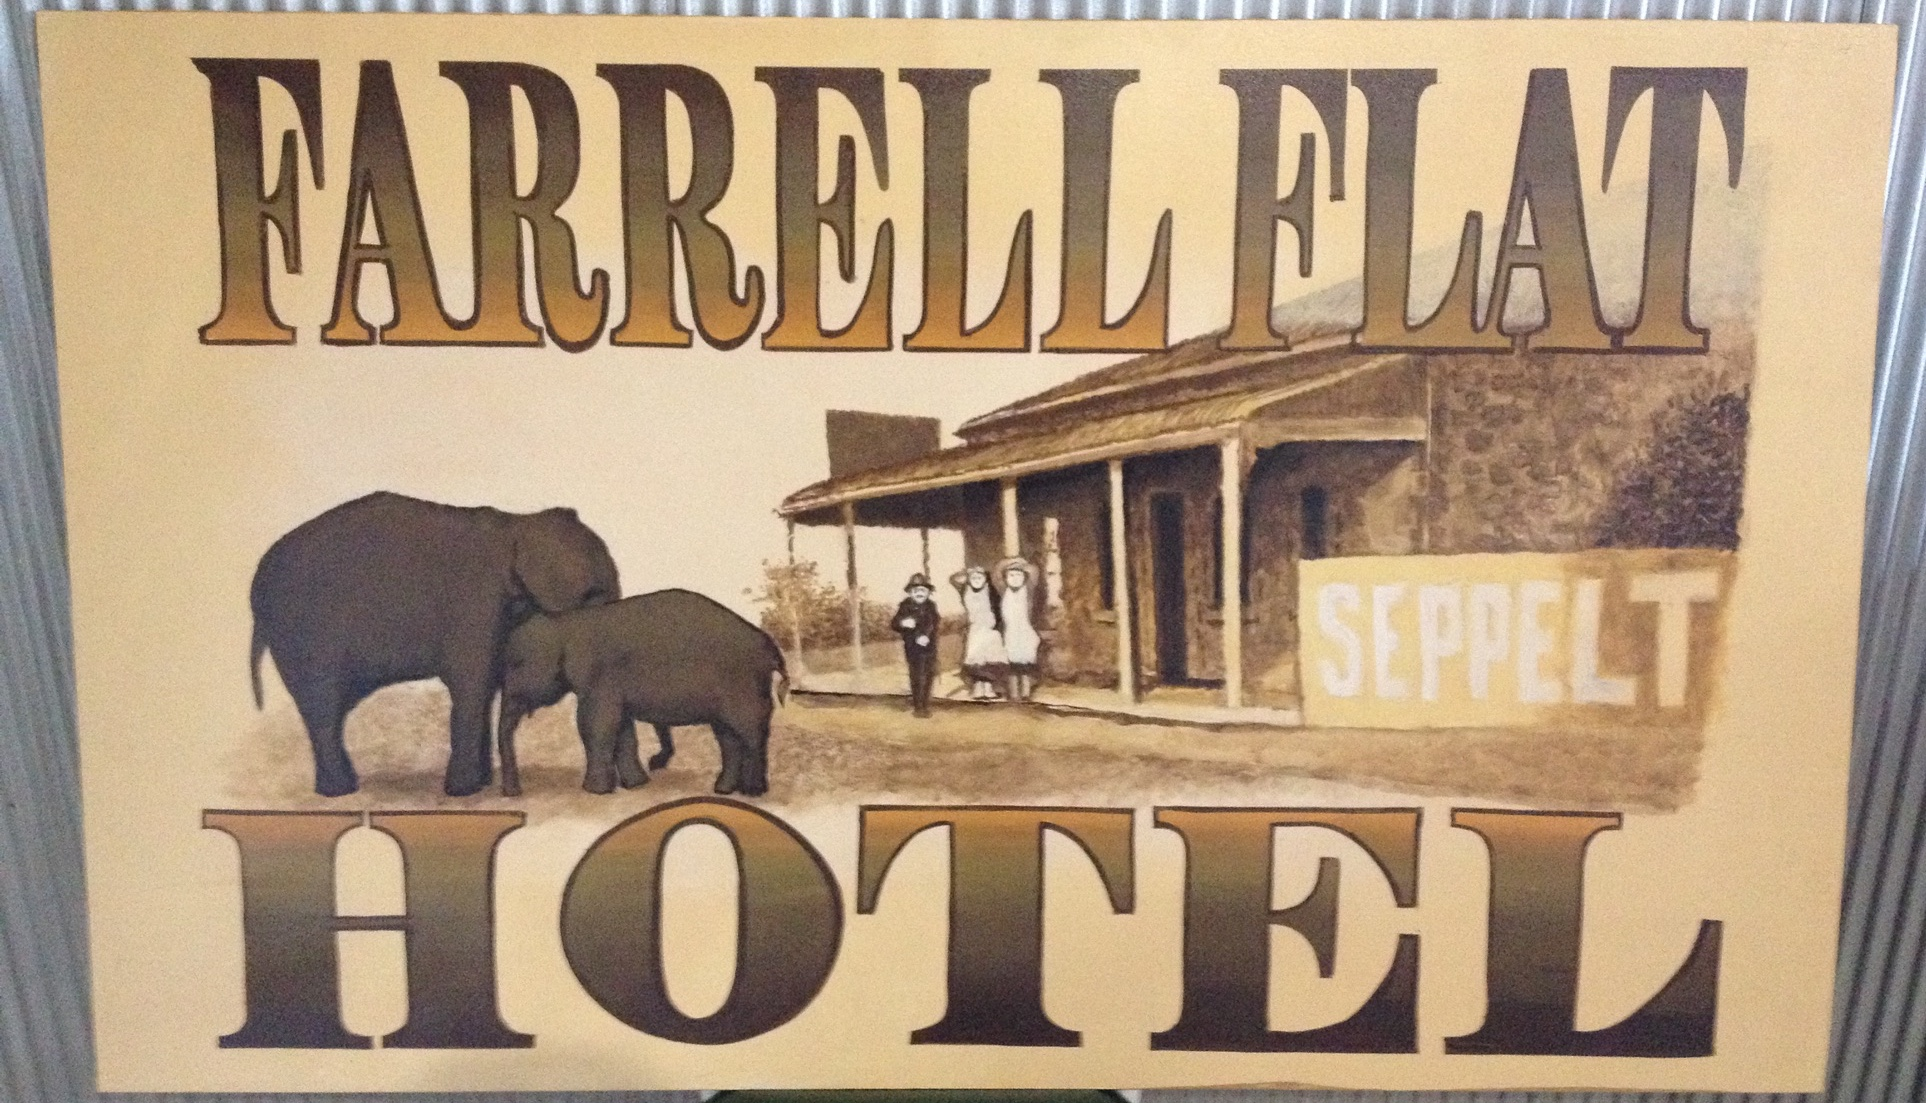 Farrell Flat Hotel South Australia - Accommodation Perth